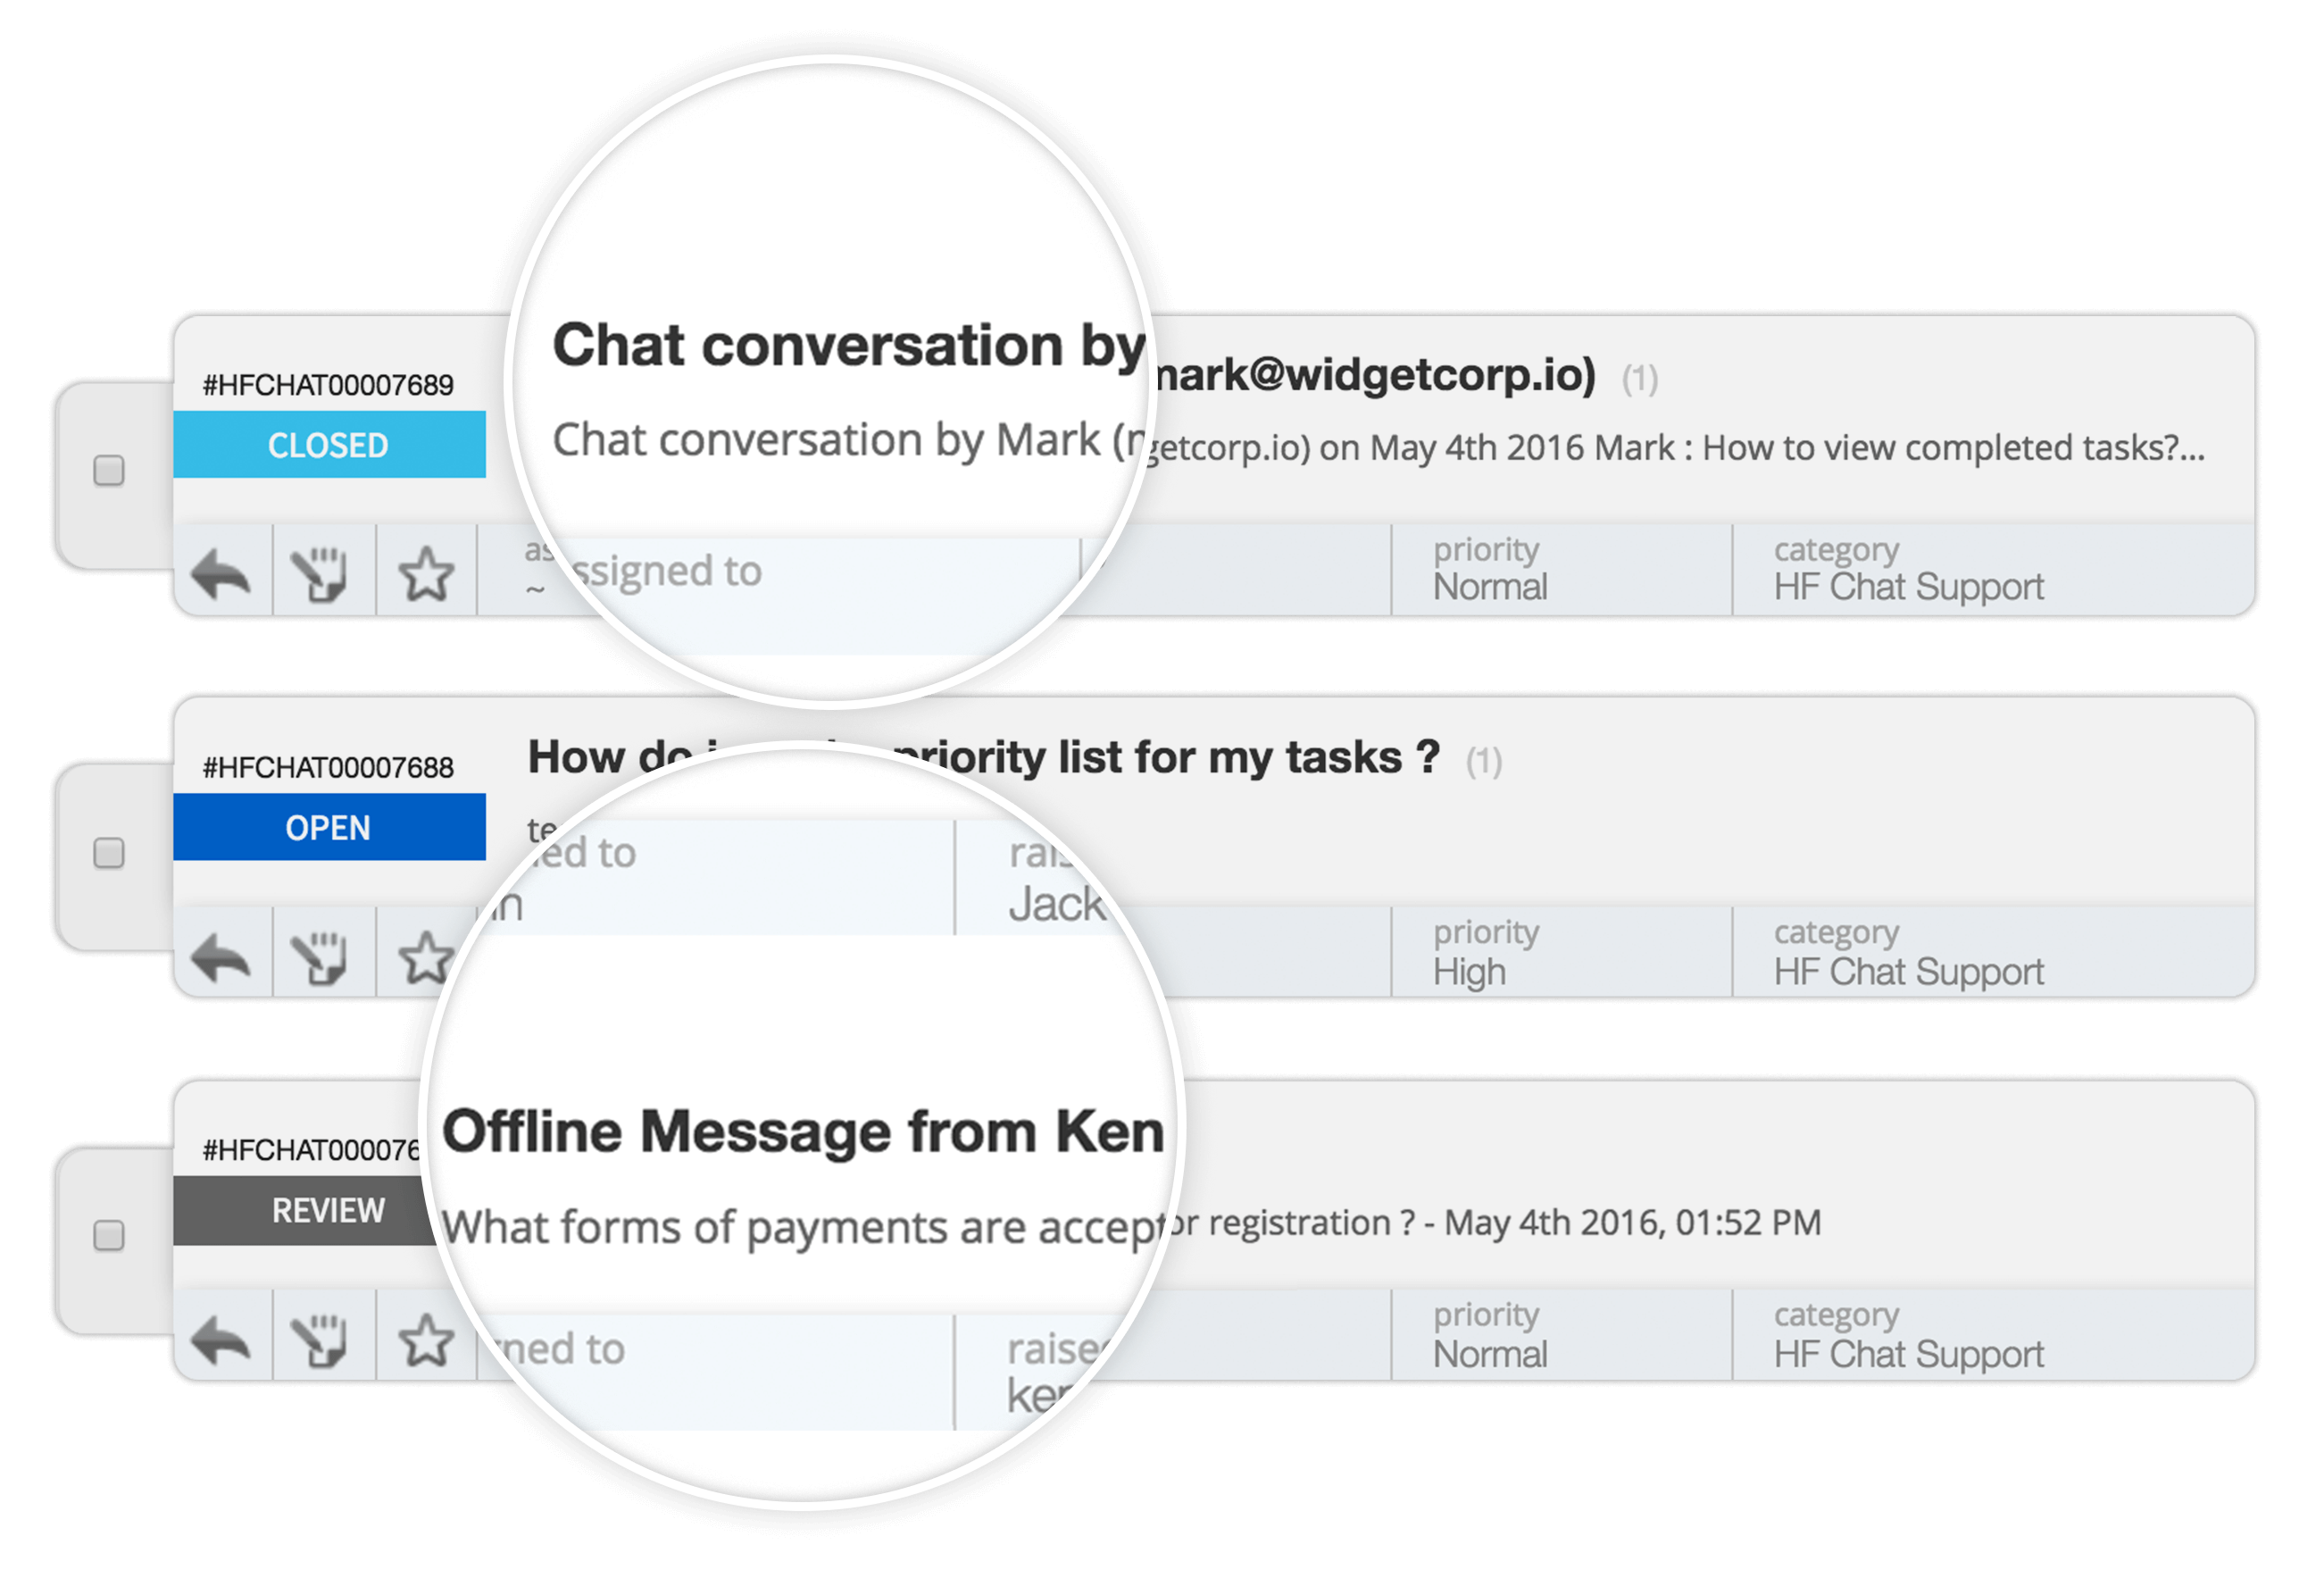 Convert all live chat conversations into help desk tickets